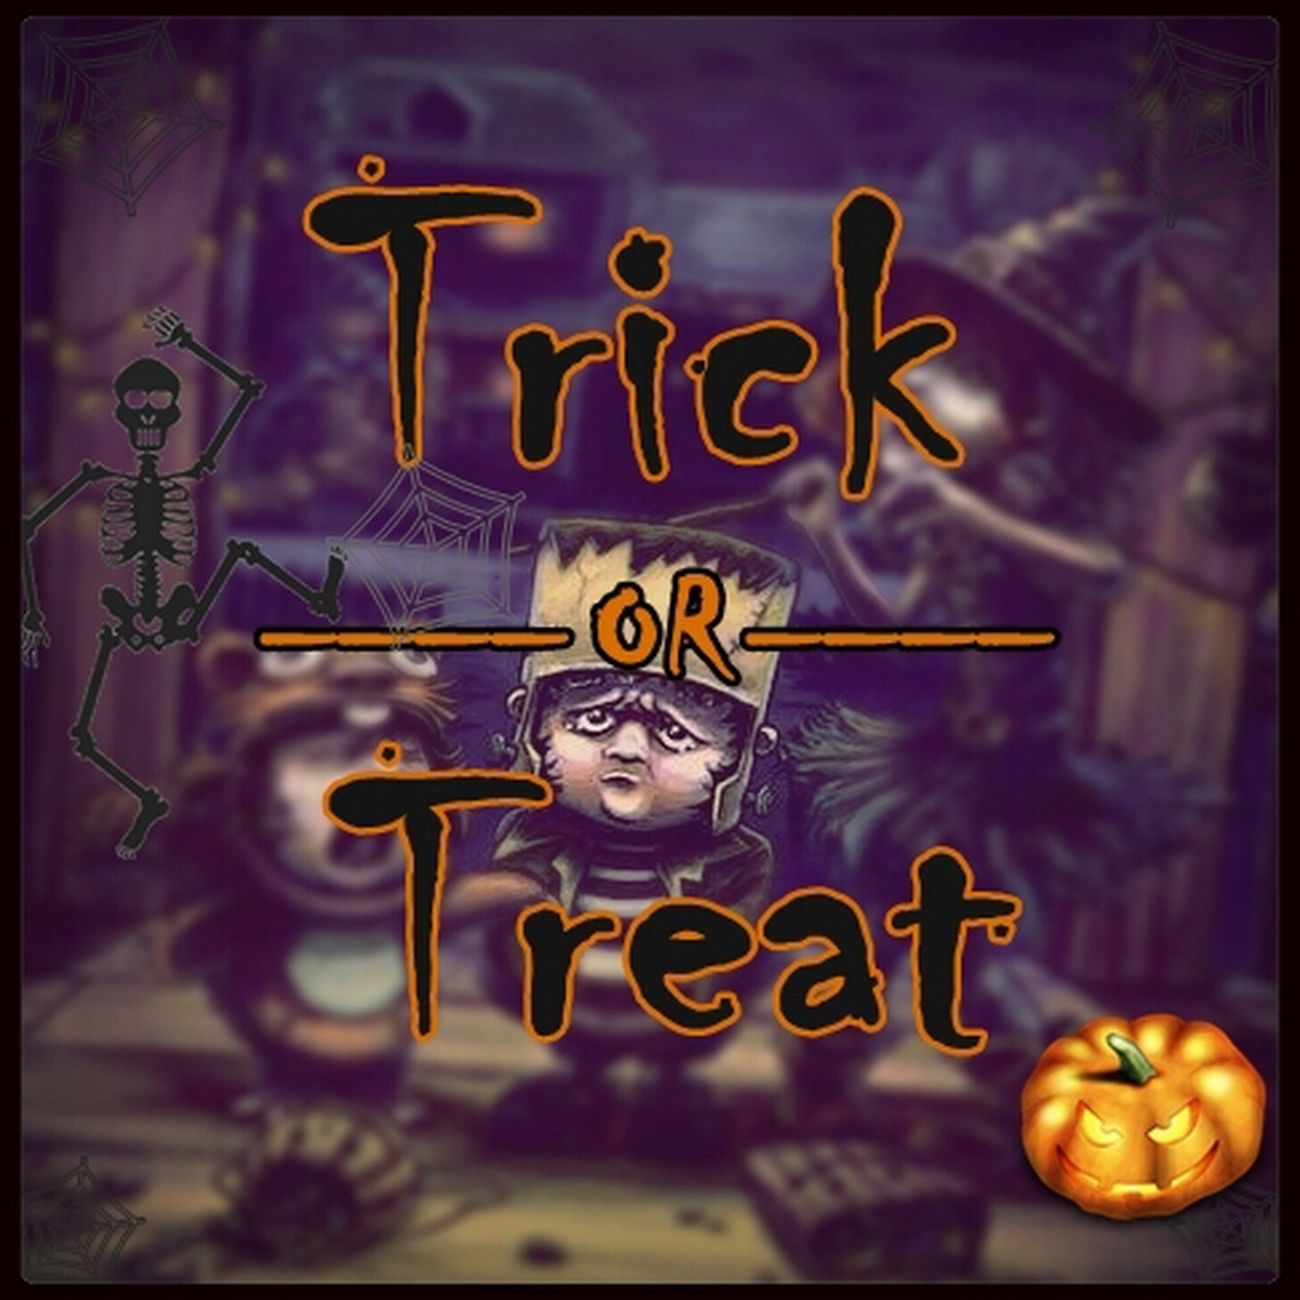 Happyhalloween Trickortreat Halloween Enjoy This Day